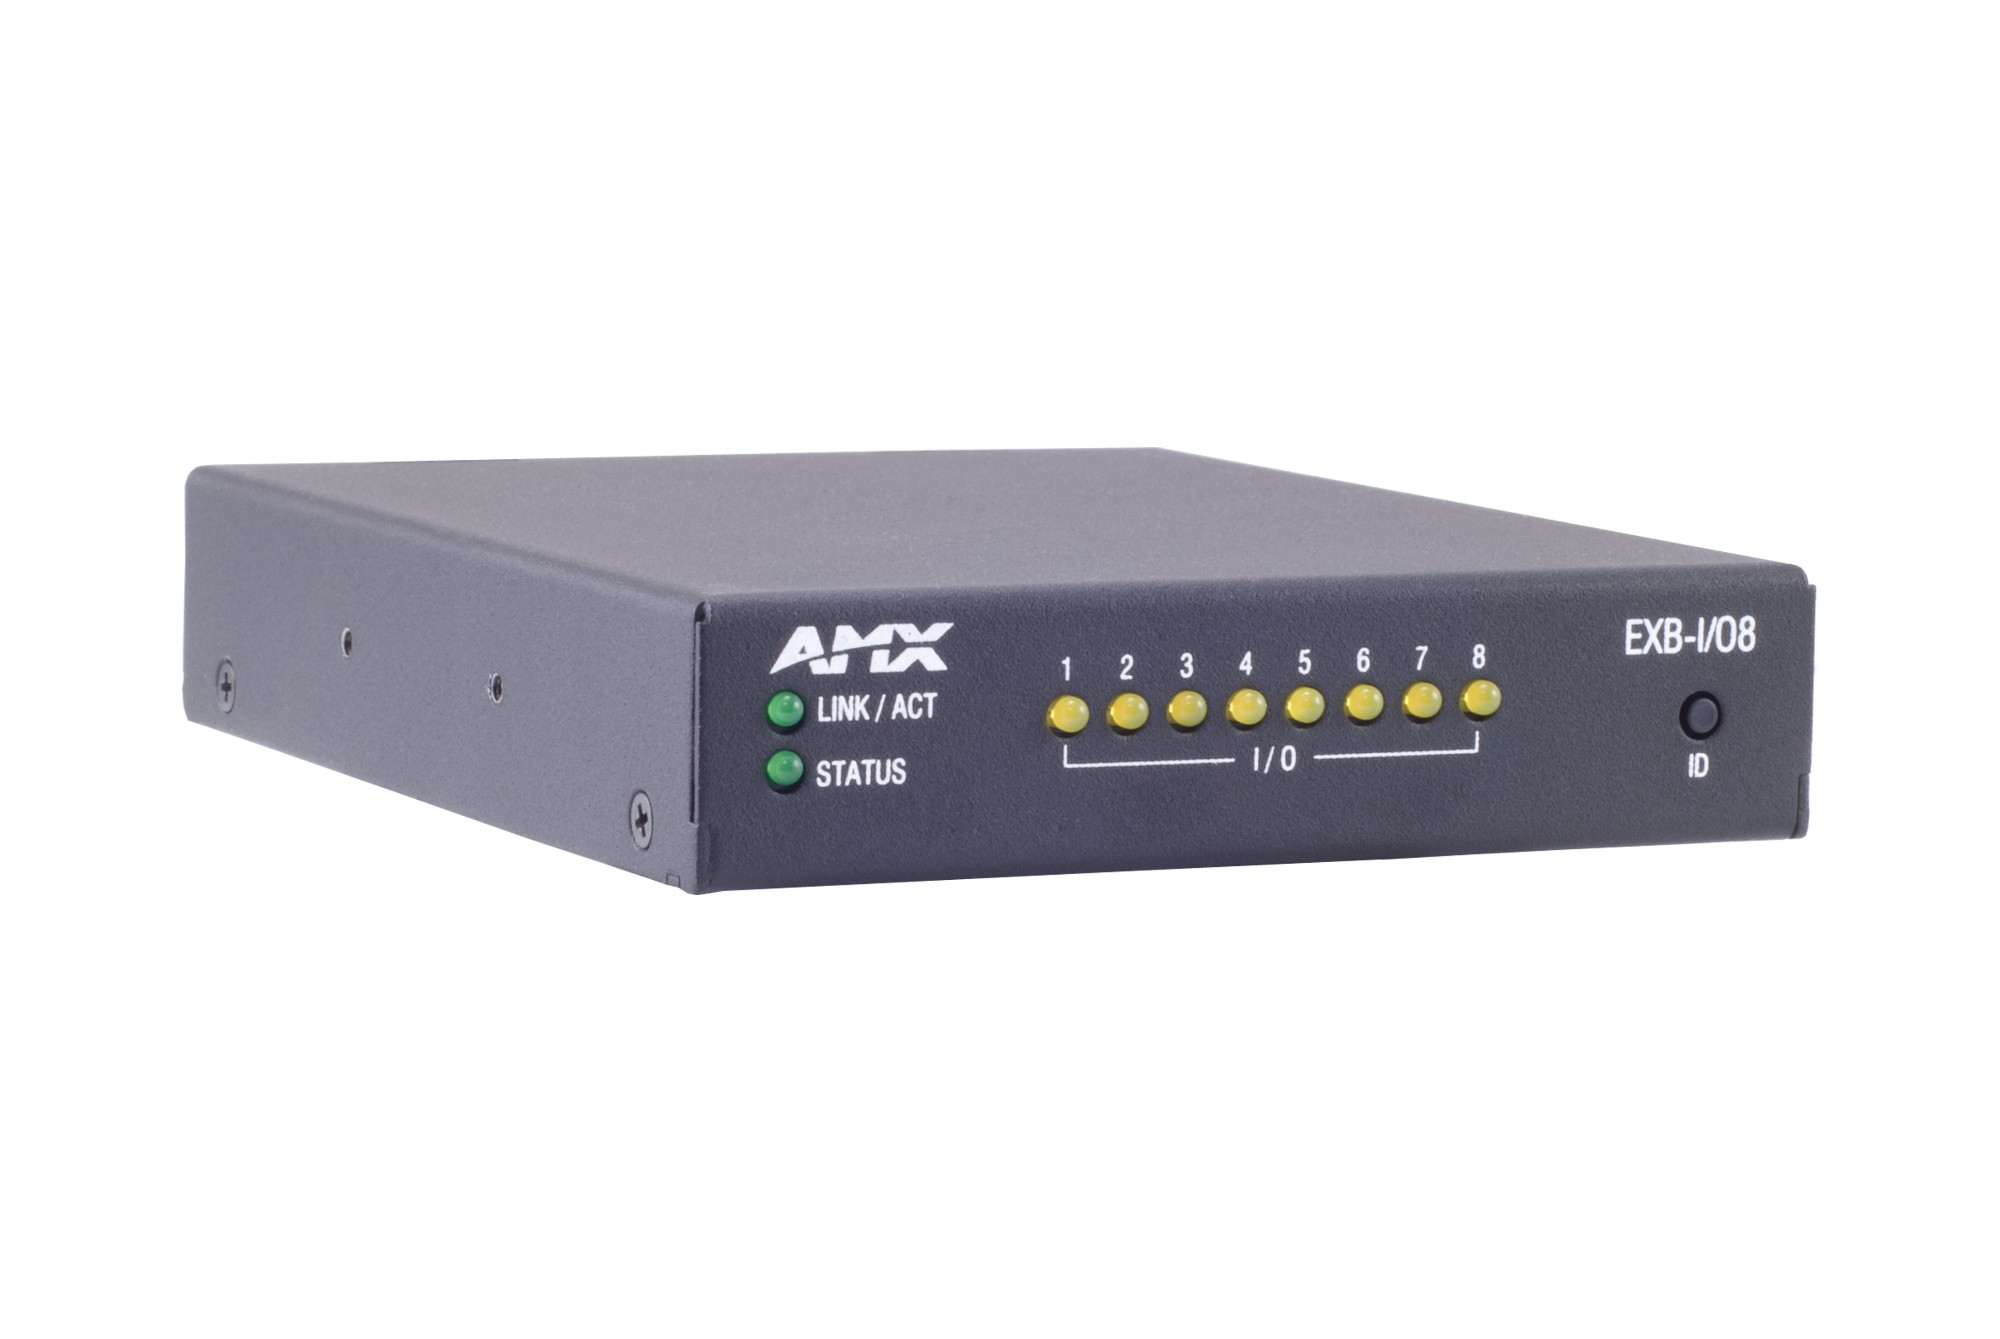 AMX EXB-I/O8 gateways/controller